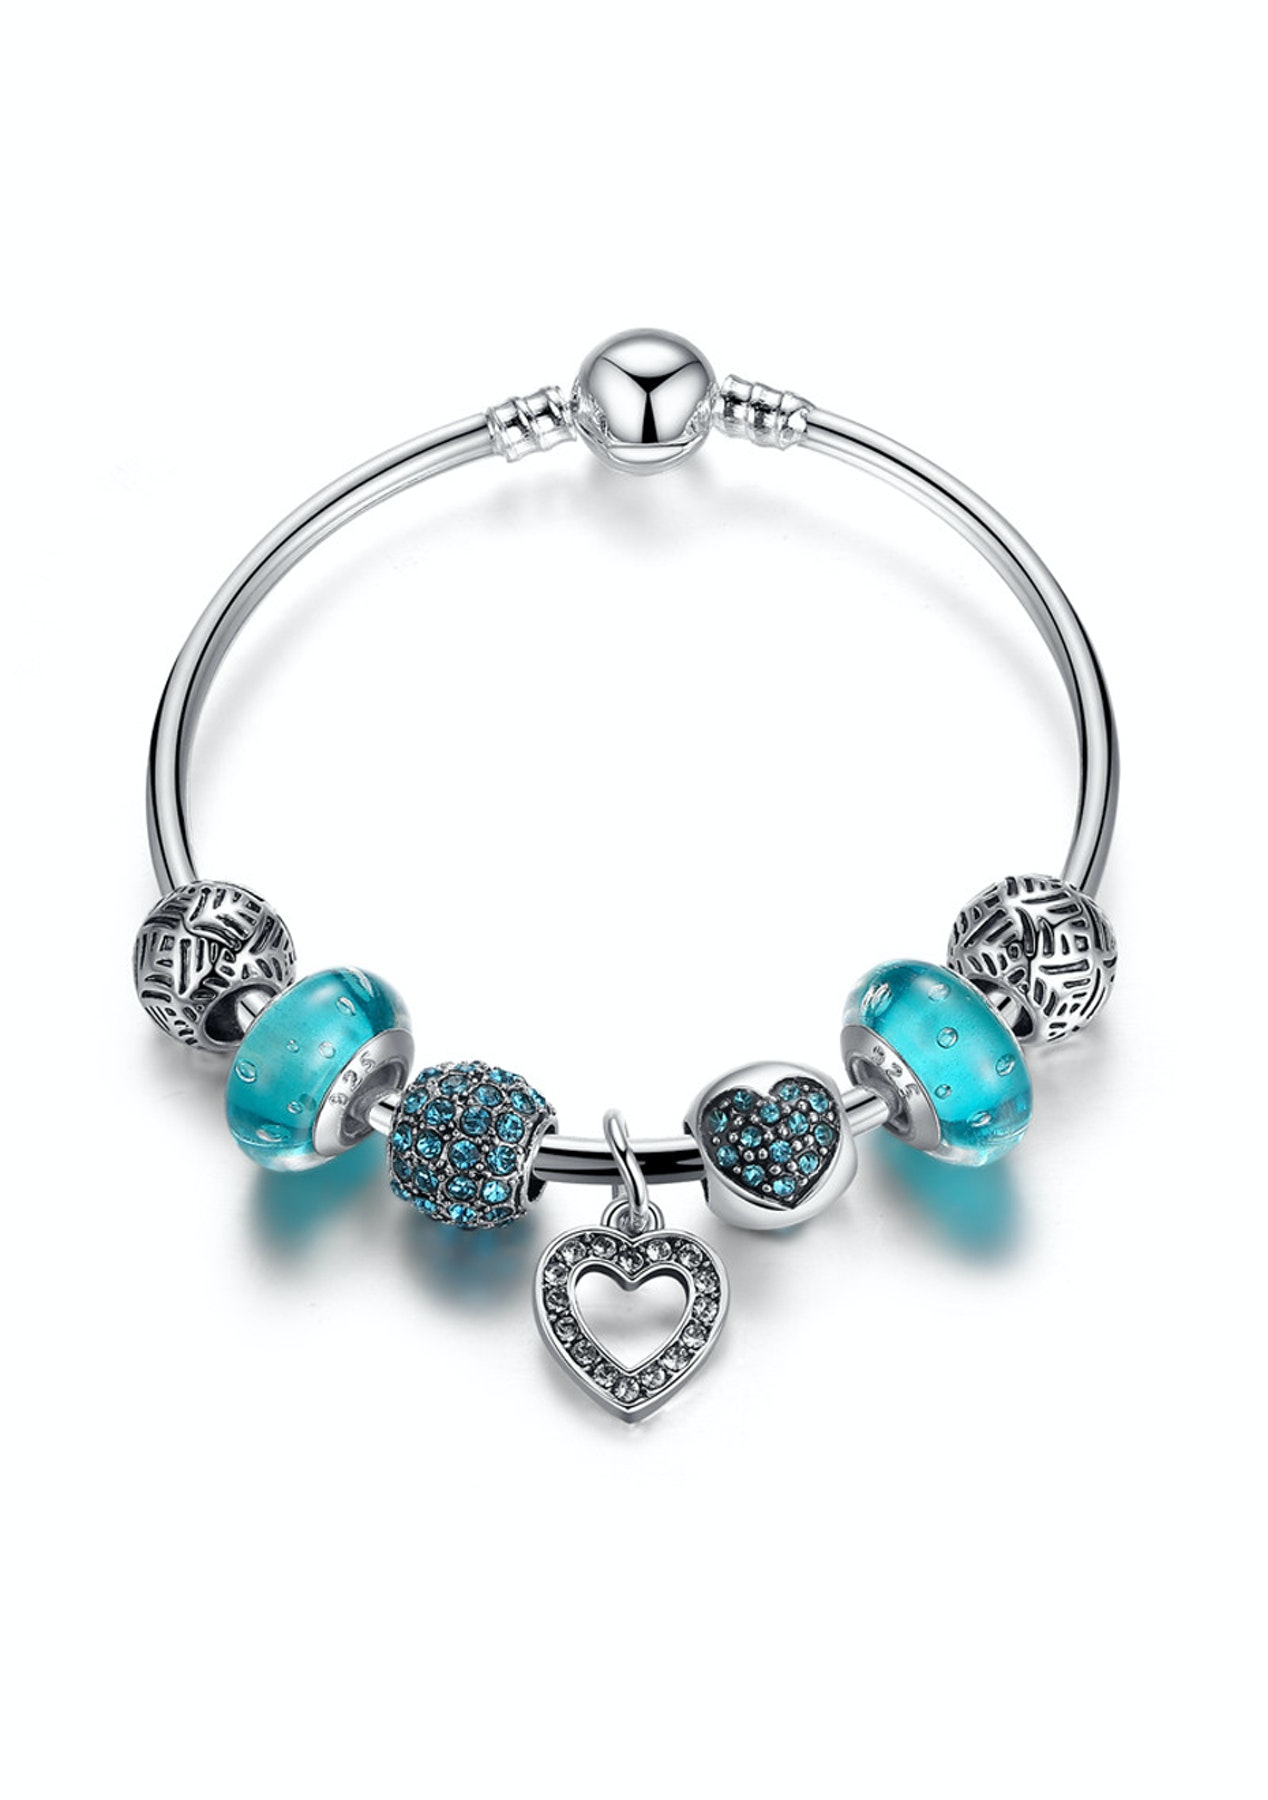 bracelet charms pin bangles elegant pandora on the combinations pandoramoa new bangle